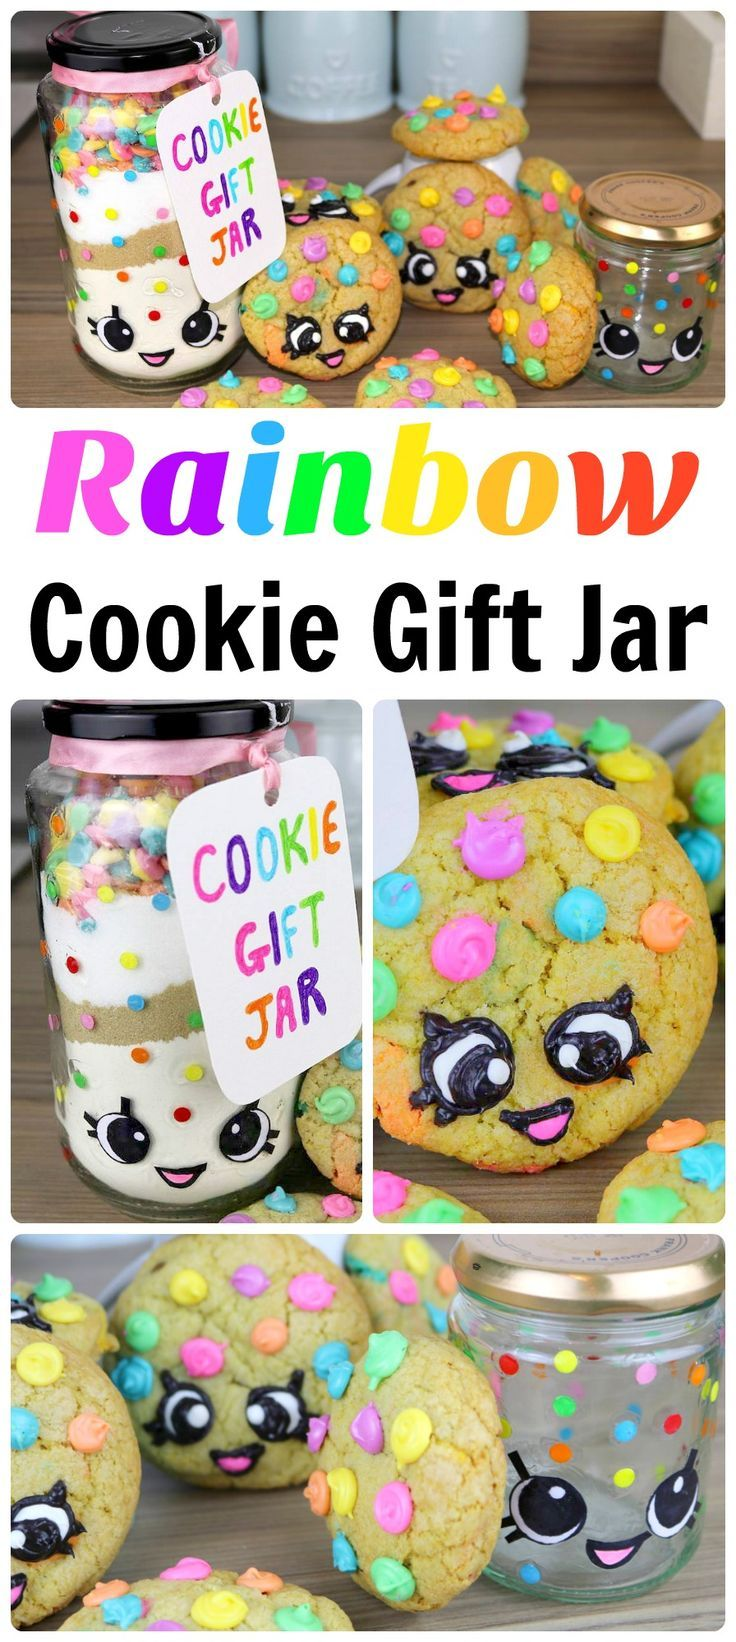 Rainbow Cookie Gift Jar DIY - this is Kawaii and Shopkins Kooky inspired - make an adorable Kooky Gift Jar - and then fill it with Rainbow Cookie ingredients. The jar can also be used to store your Shopkins or other bits and pieces. A great mason jar DIY.